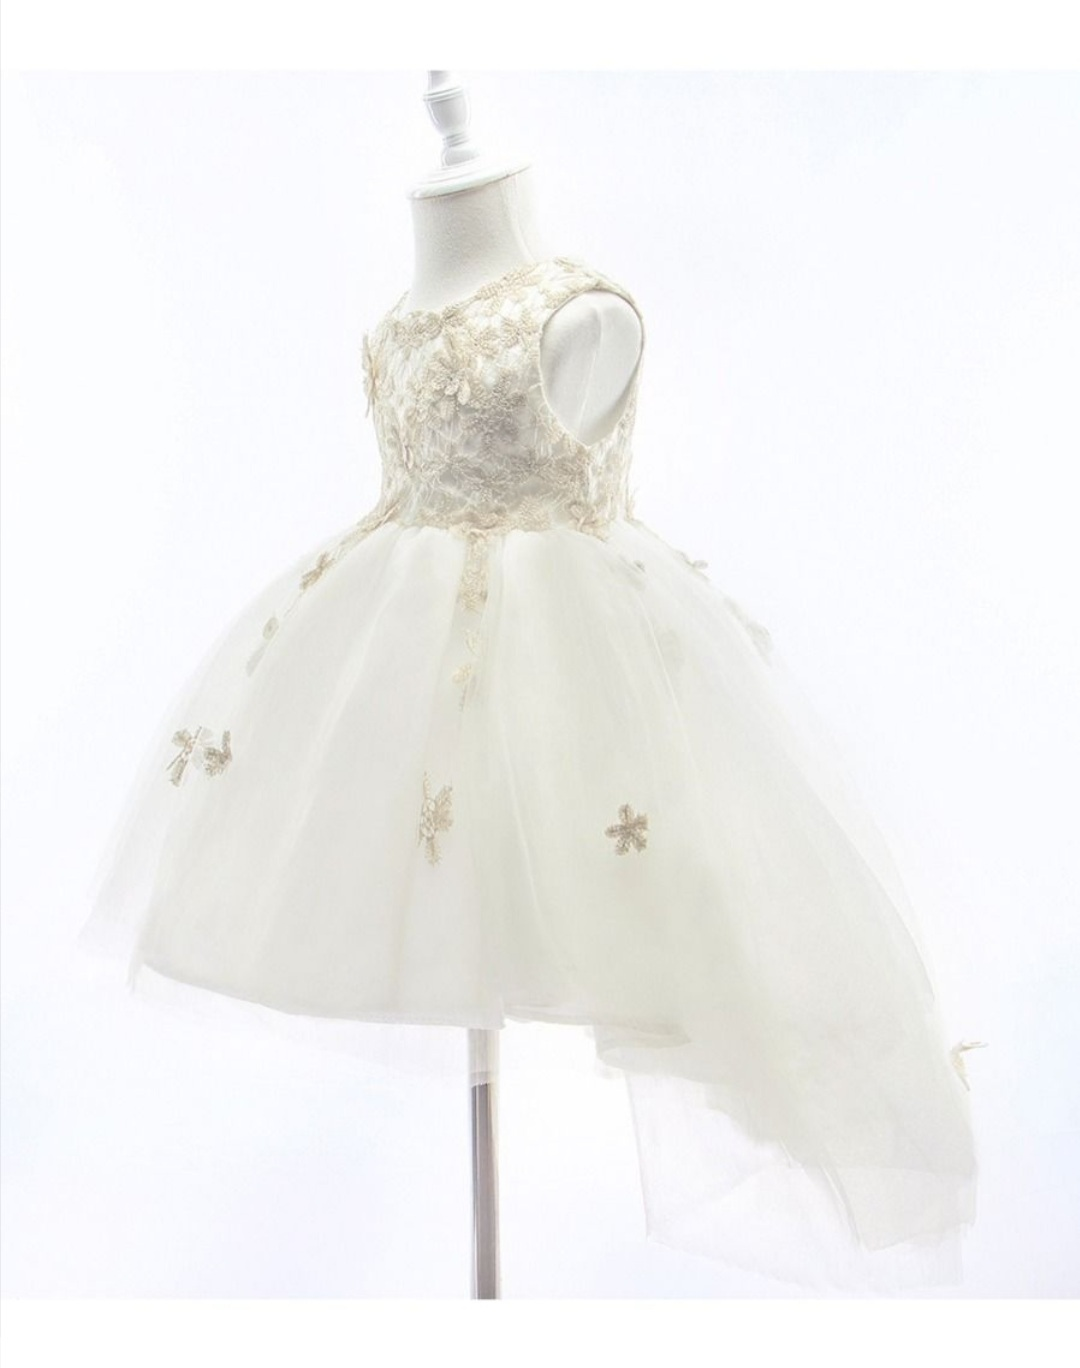 special occasion embroidery flower mesh dress 4 to 5 years